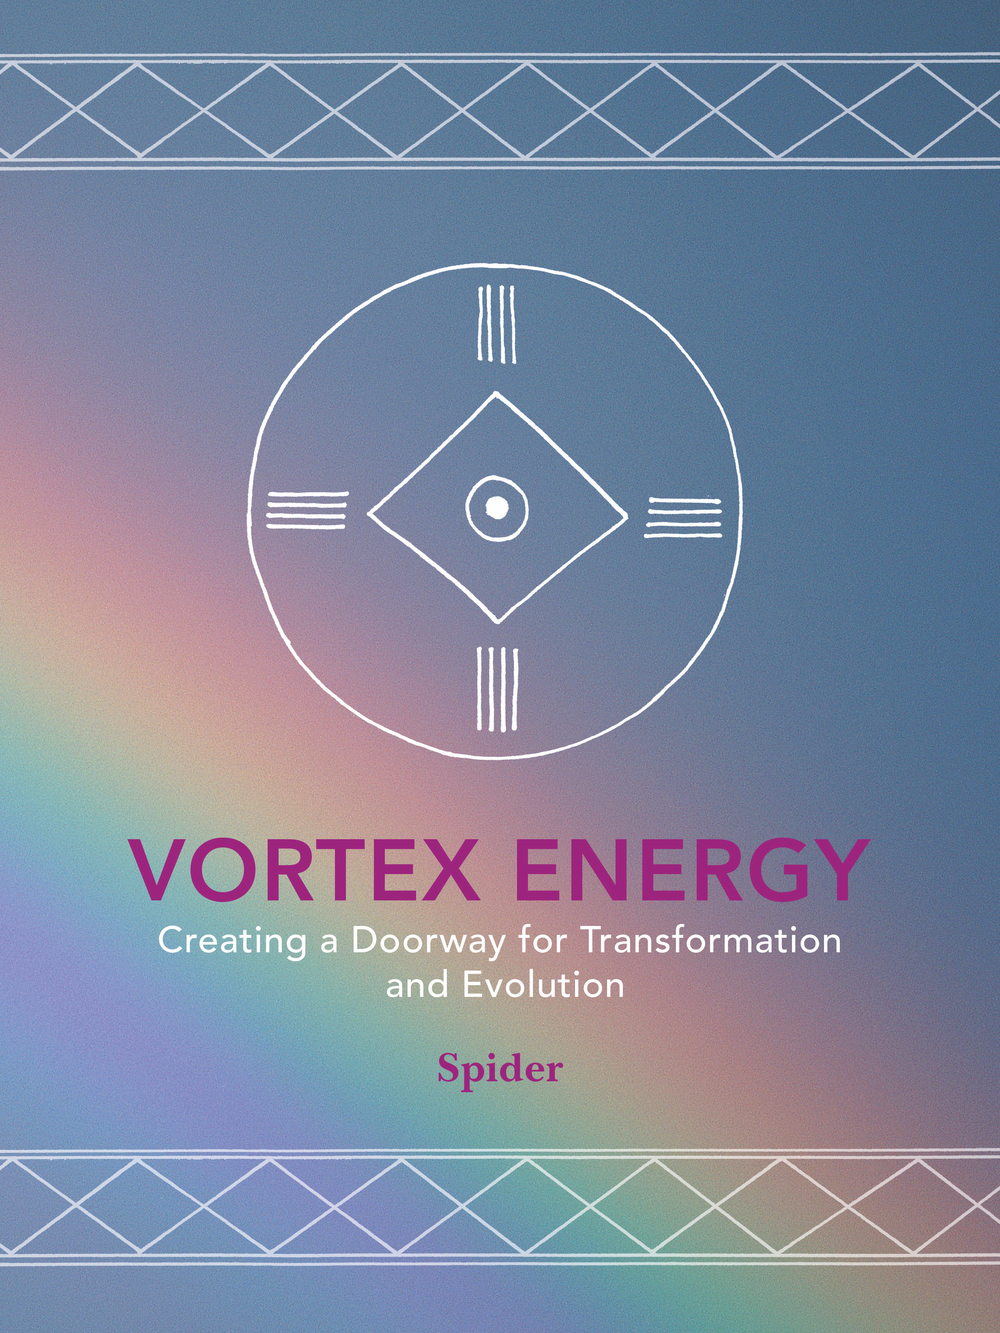 Vortex Energy Creating A Doorway For transformation And Evolution by Spider, published by Balboa press 2015